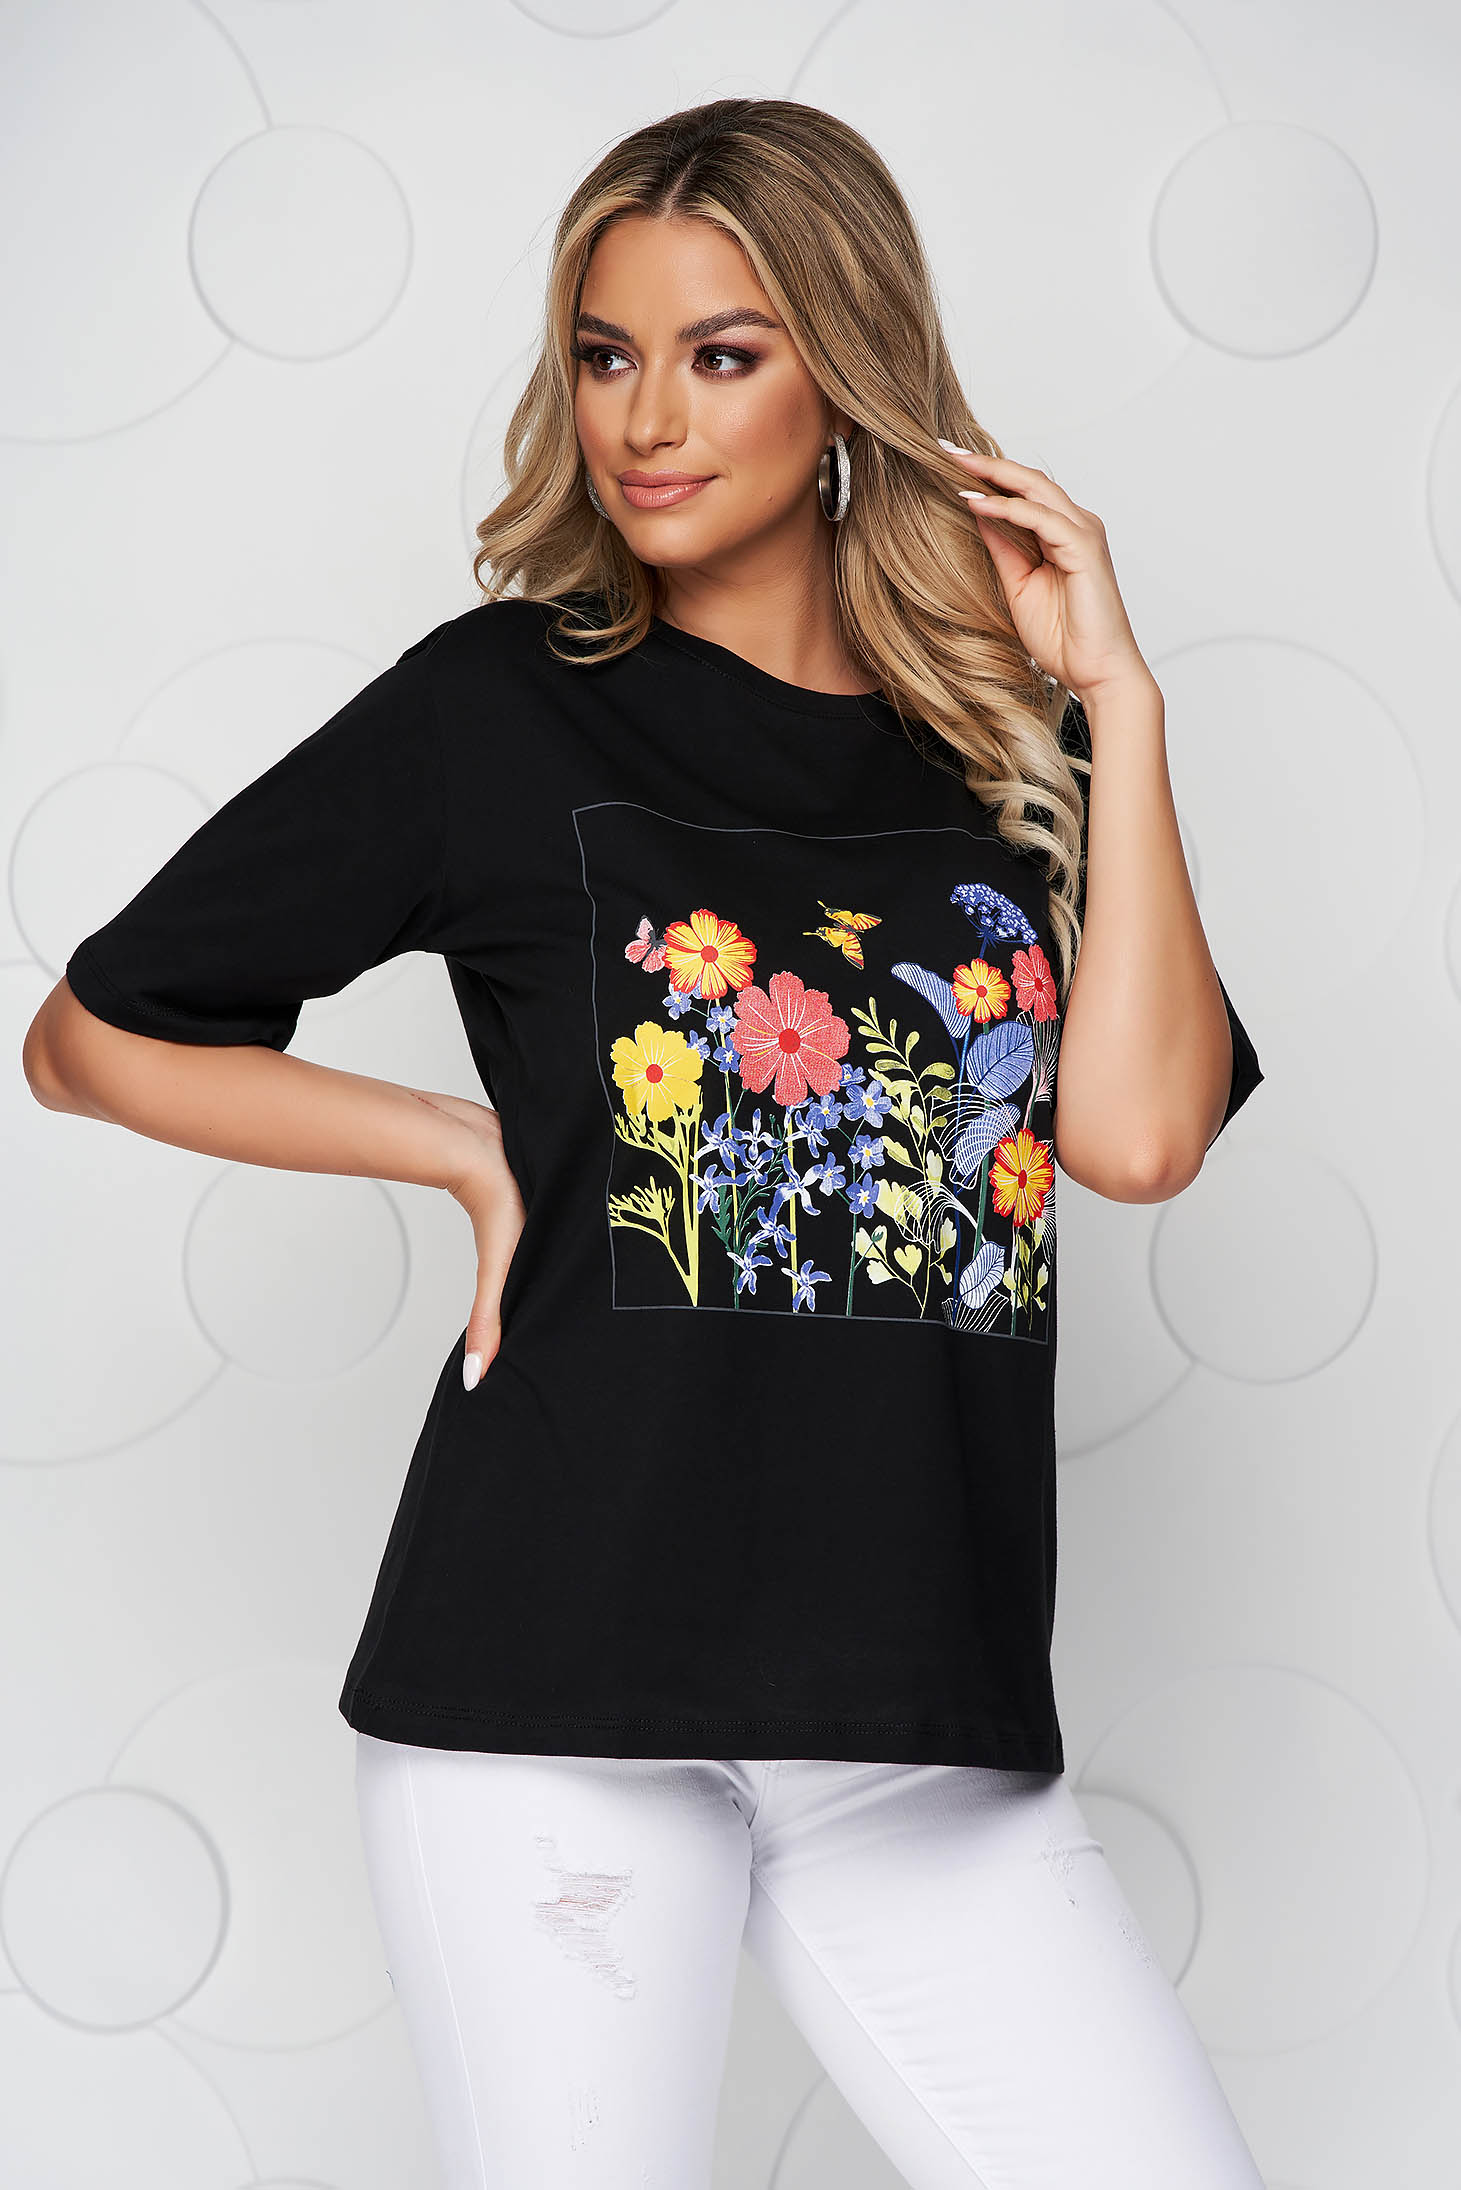 Black t-shirt cotton loose fit with rounded cleavage with floral print